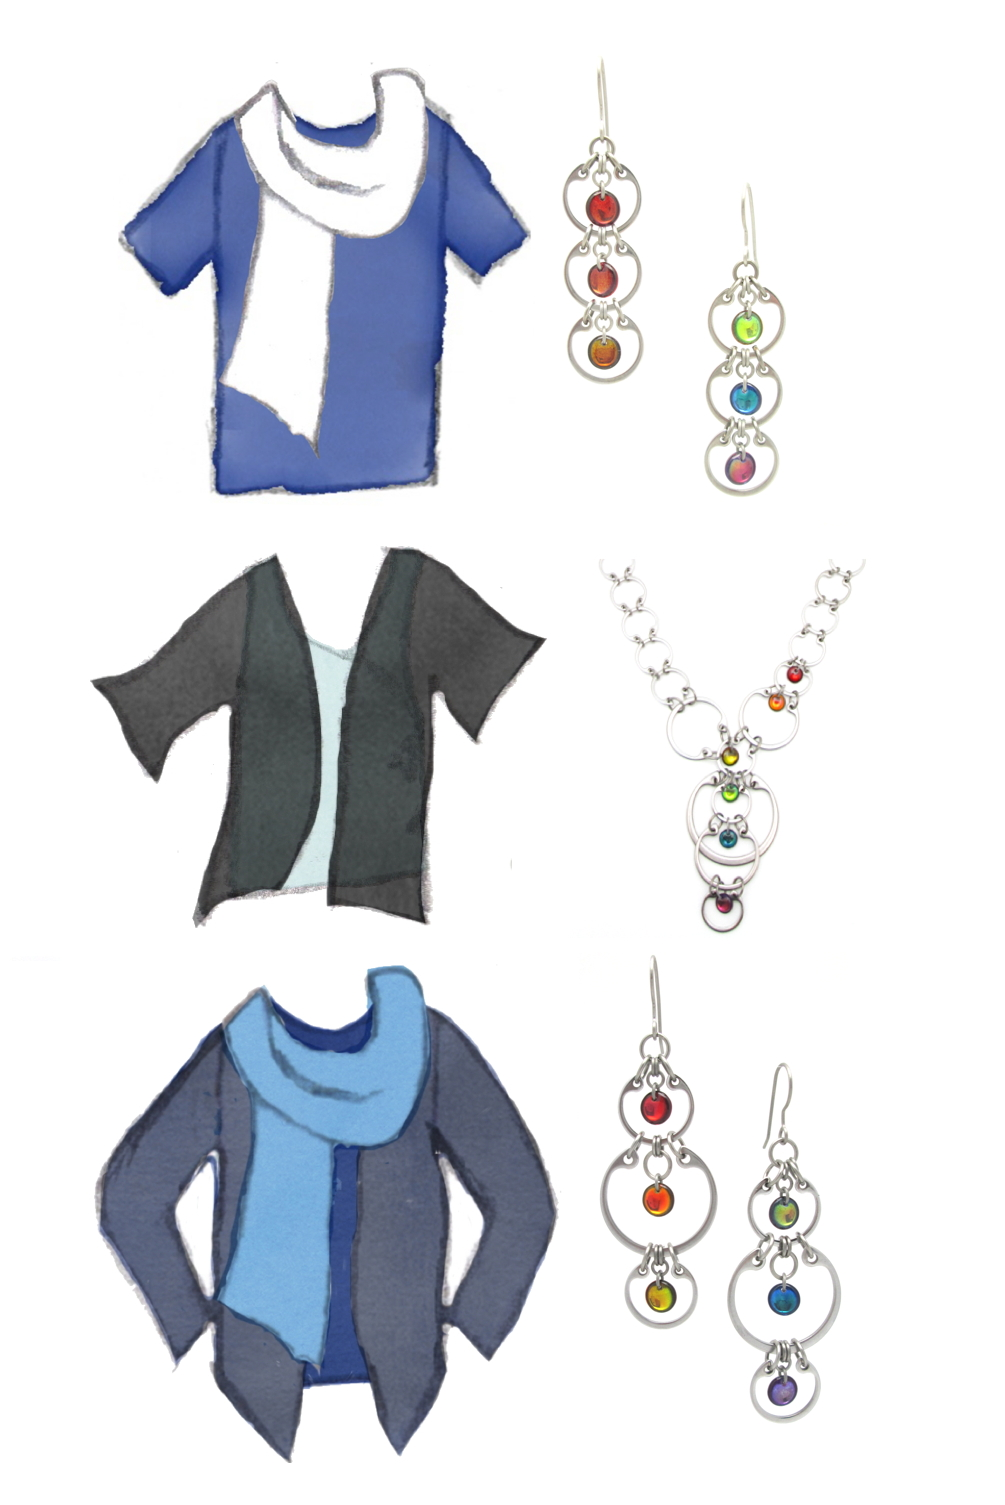 three style sketches combine blue, white, and black tops and scarves with photos of Wraptillion's Tripled Rainbow Earrings, Cascading Rainbow Necklace, and Alternating Rainbow Earrings.